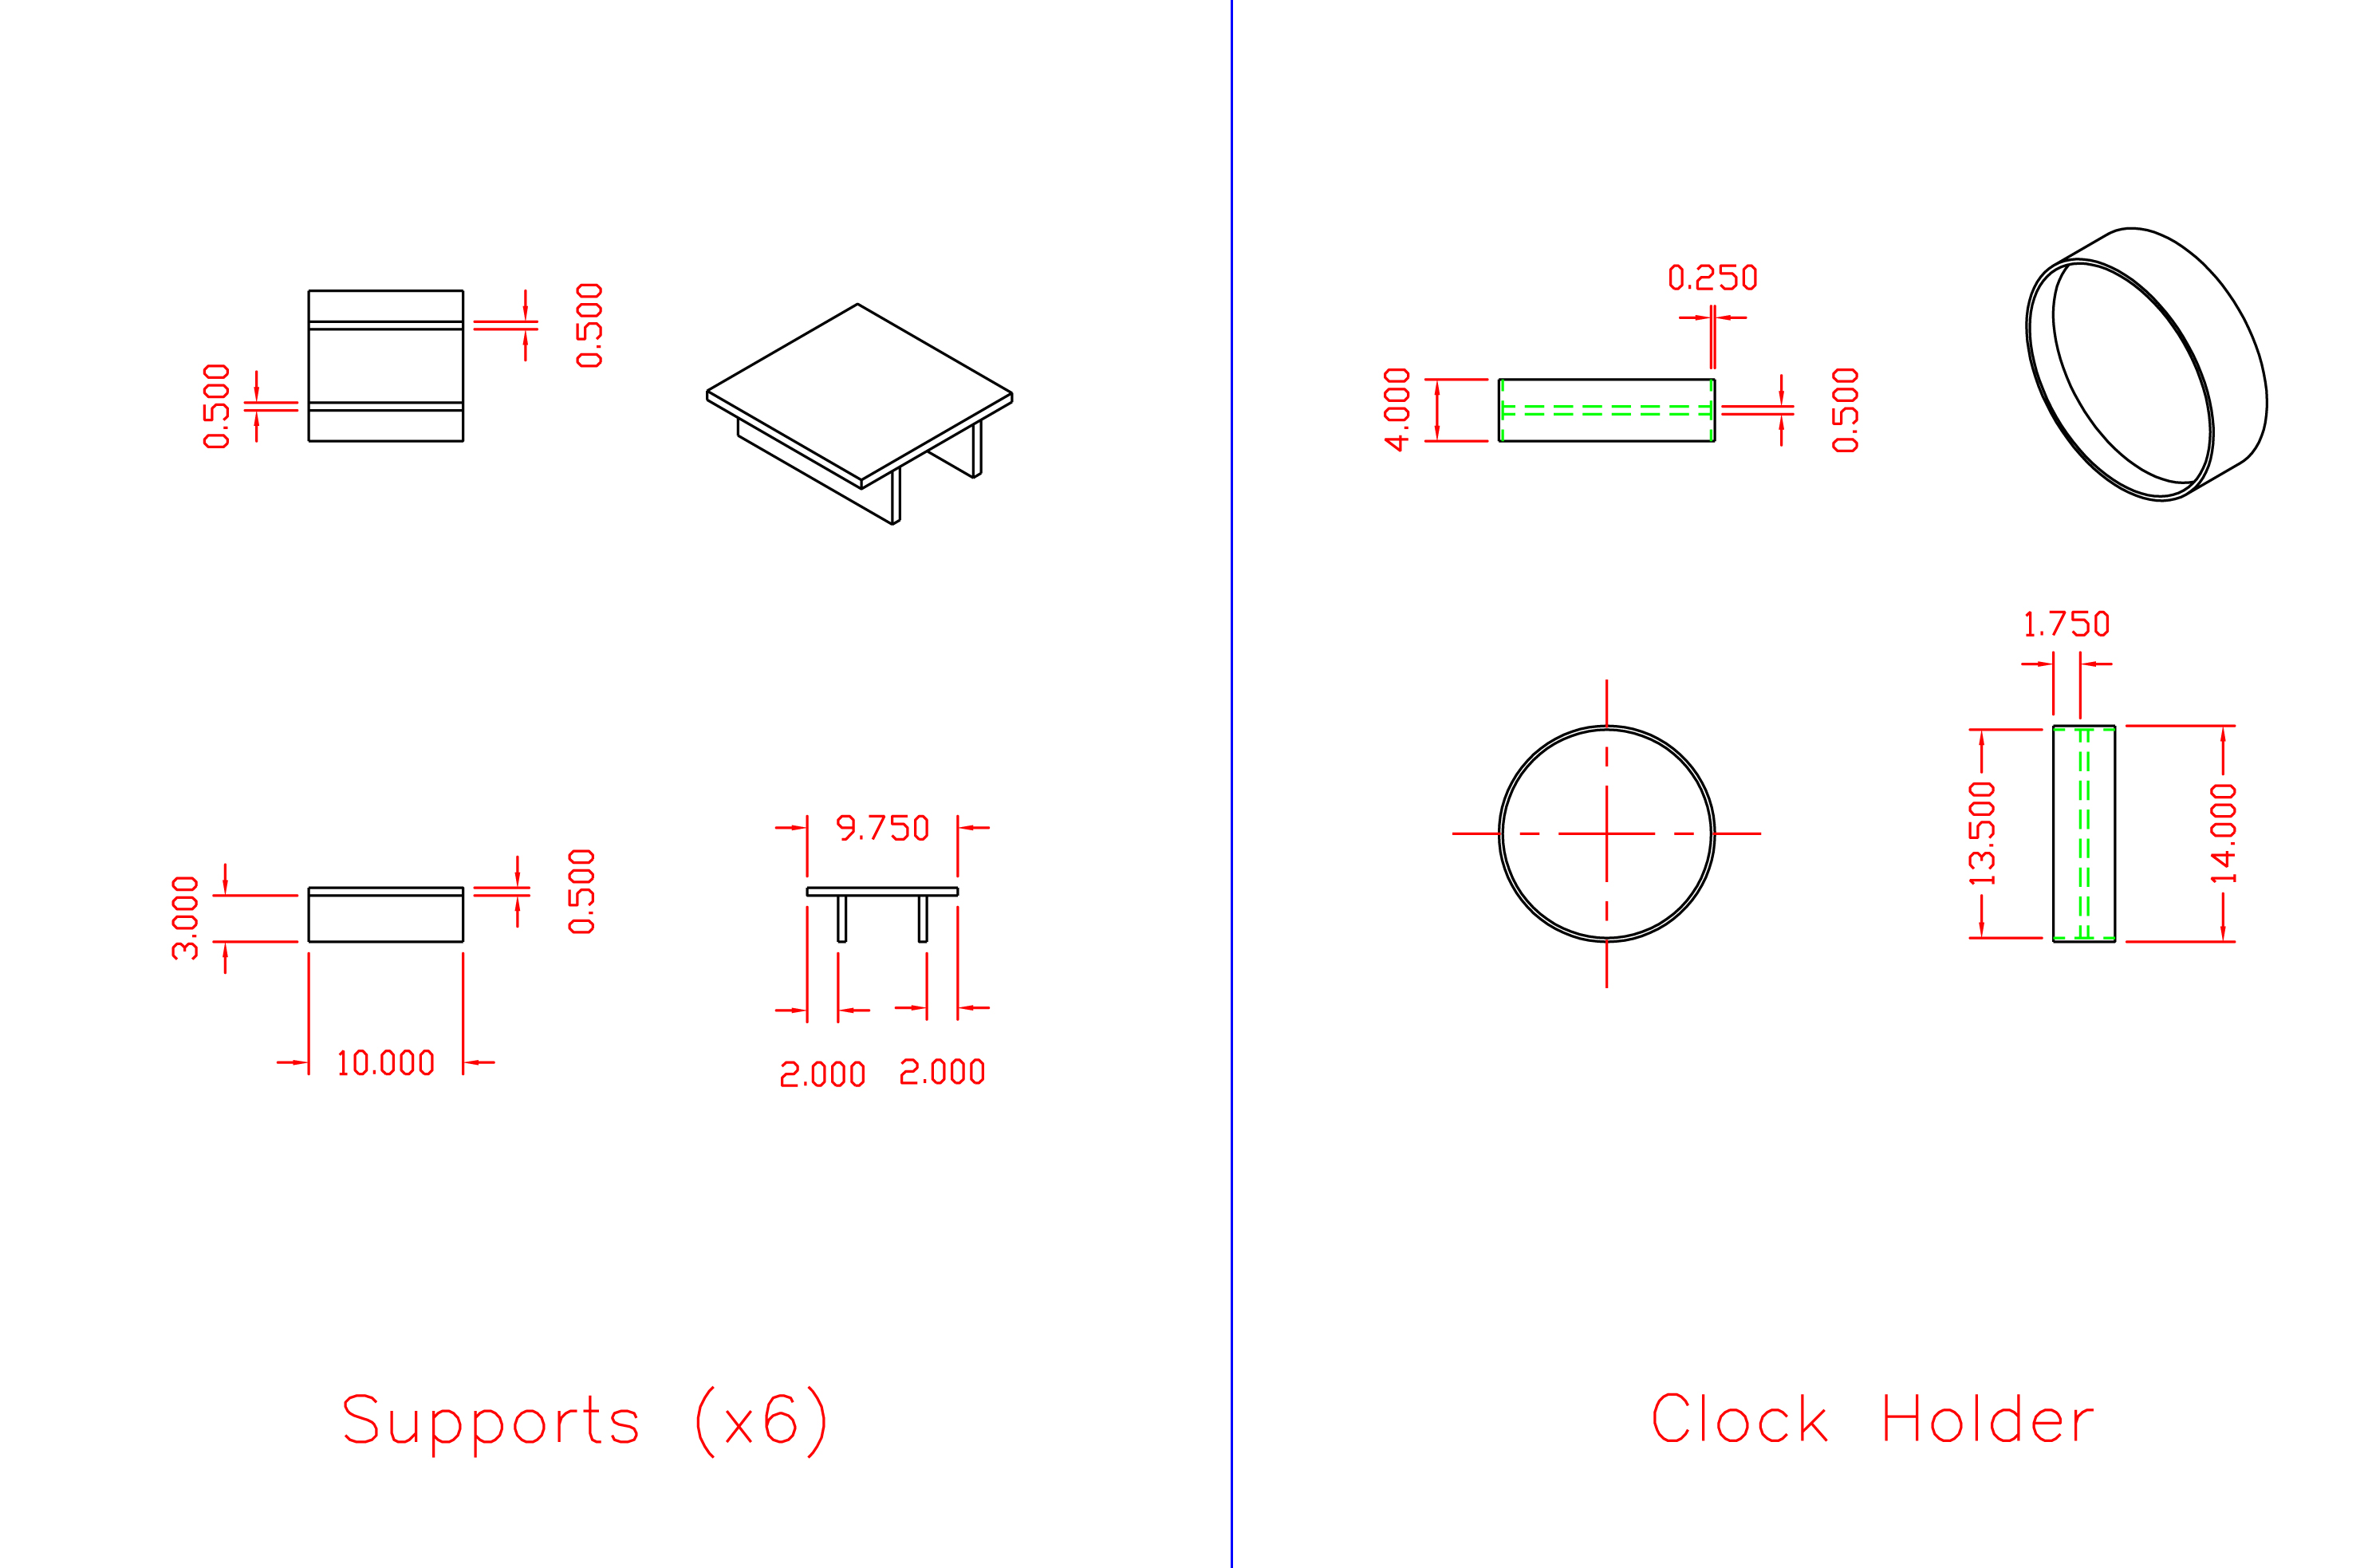 Picture of Assembly Supports